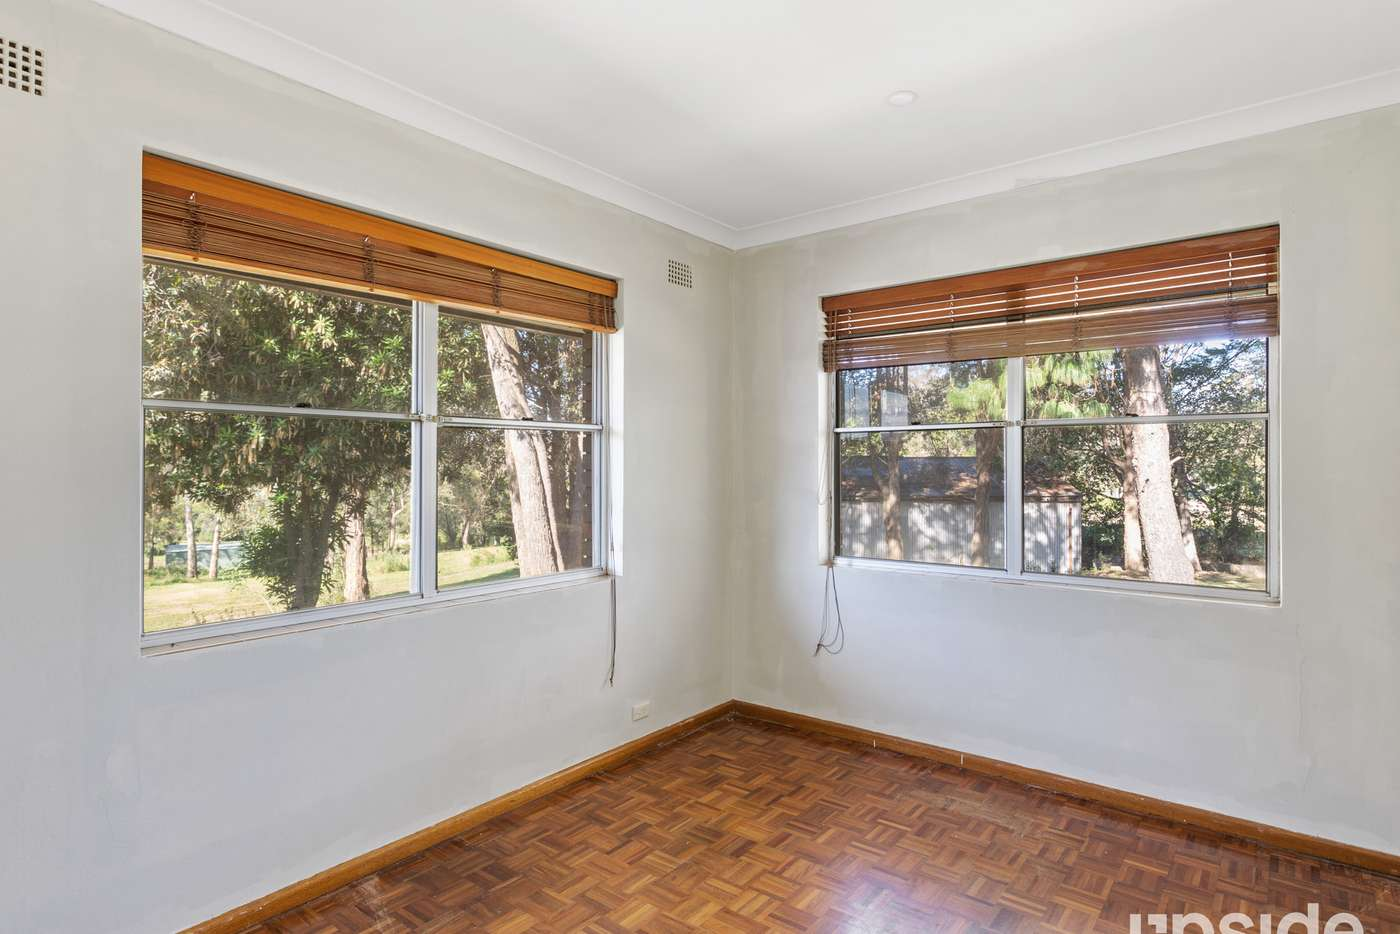 Fifth view of Homely house listing, 1049 Old Northern Road, Dural NSW 2158